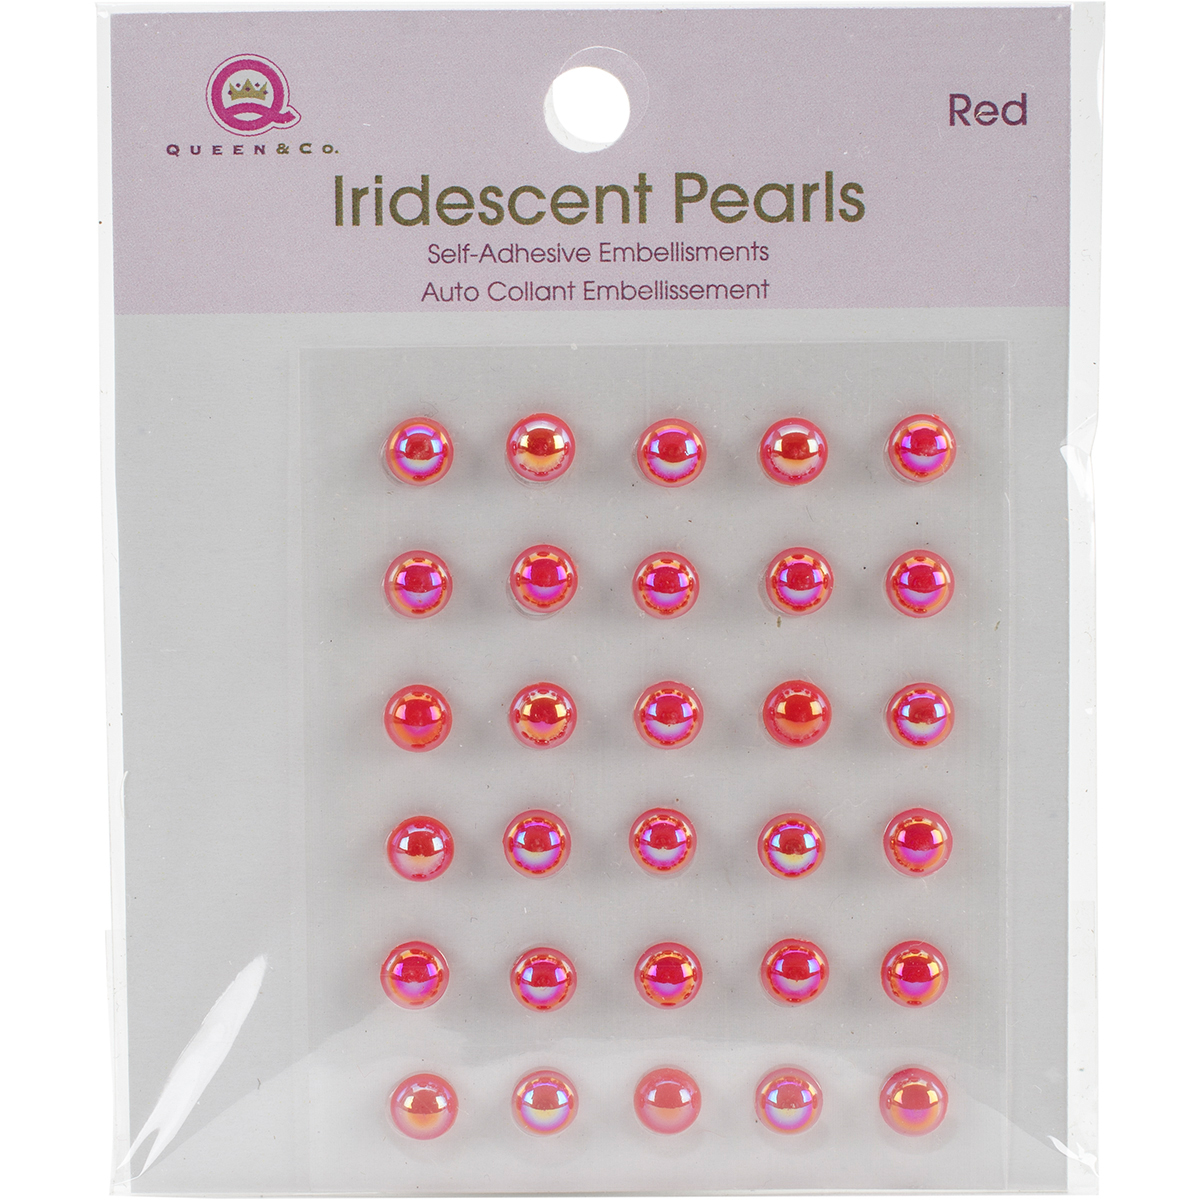 Queen & Co IP10-71  Iridescent Pearls Self-Adhesive 30/Pkg-Red